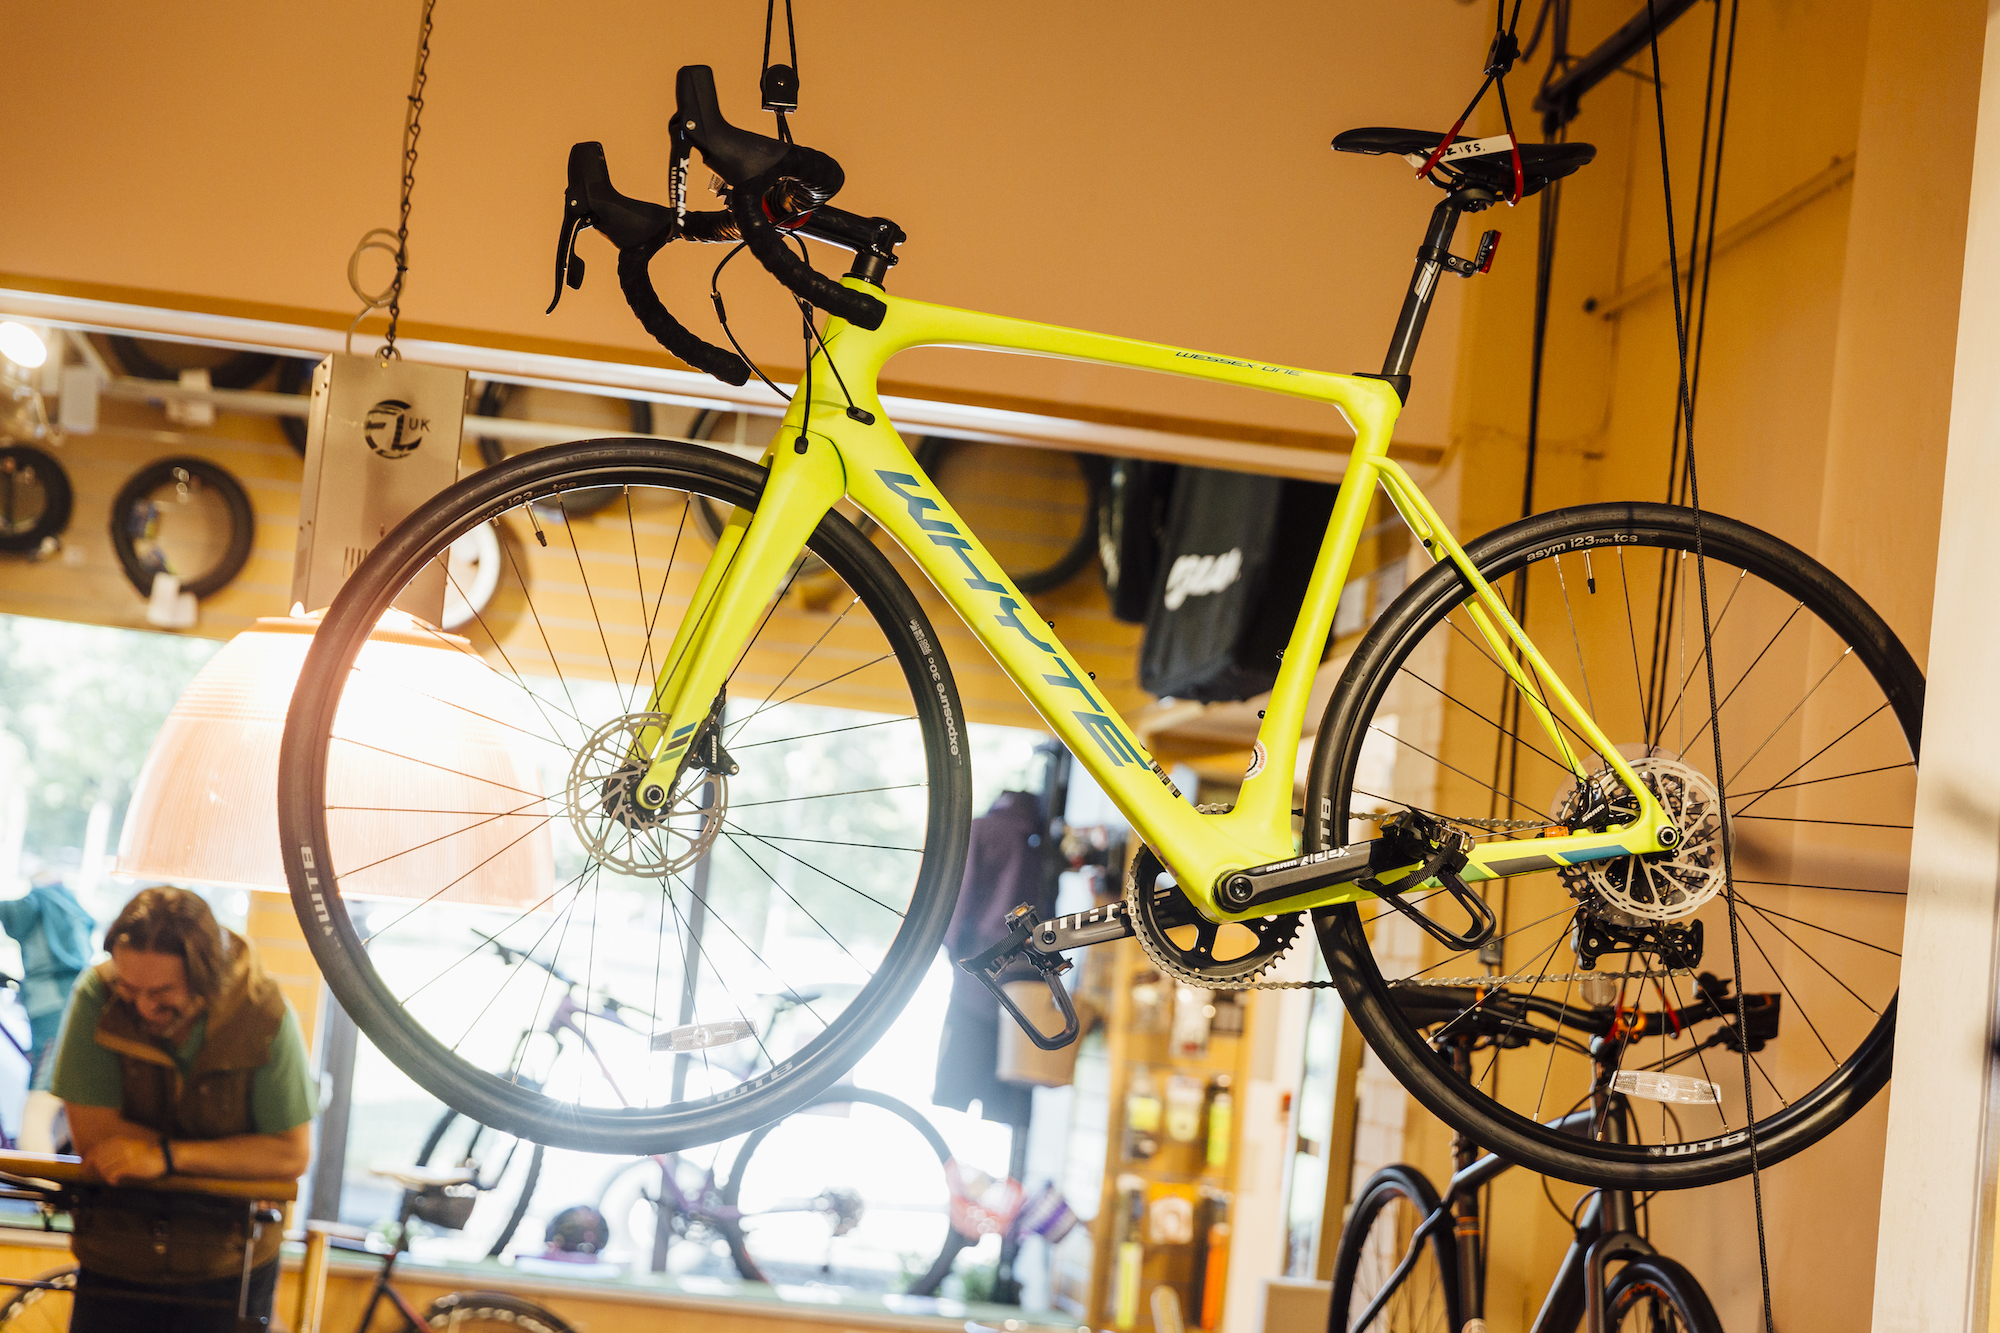 'Let's hope the industry can come out the other side': How bike shops are handling the coronavirus crisis - Cycling Weekly